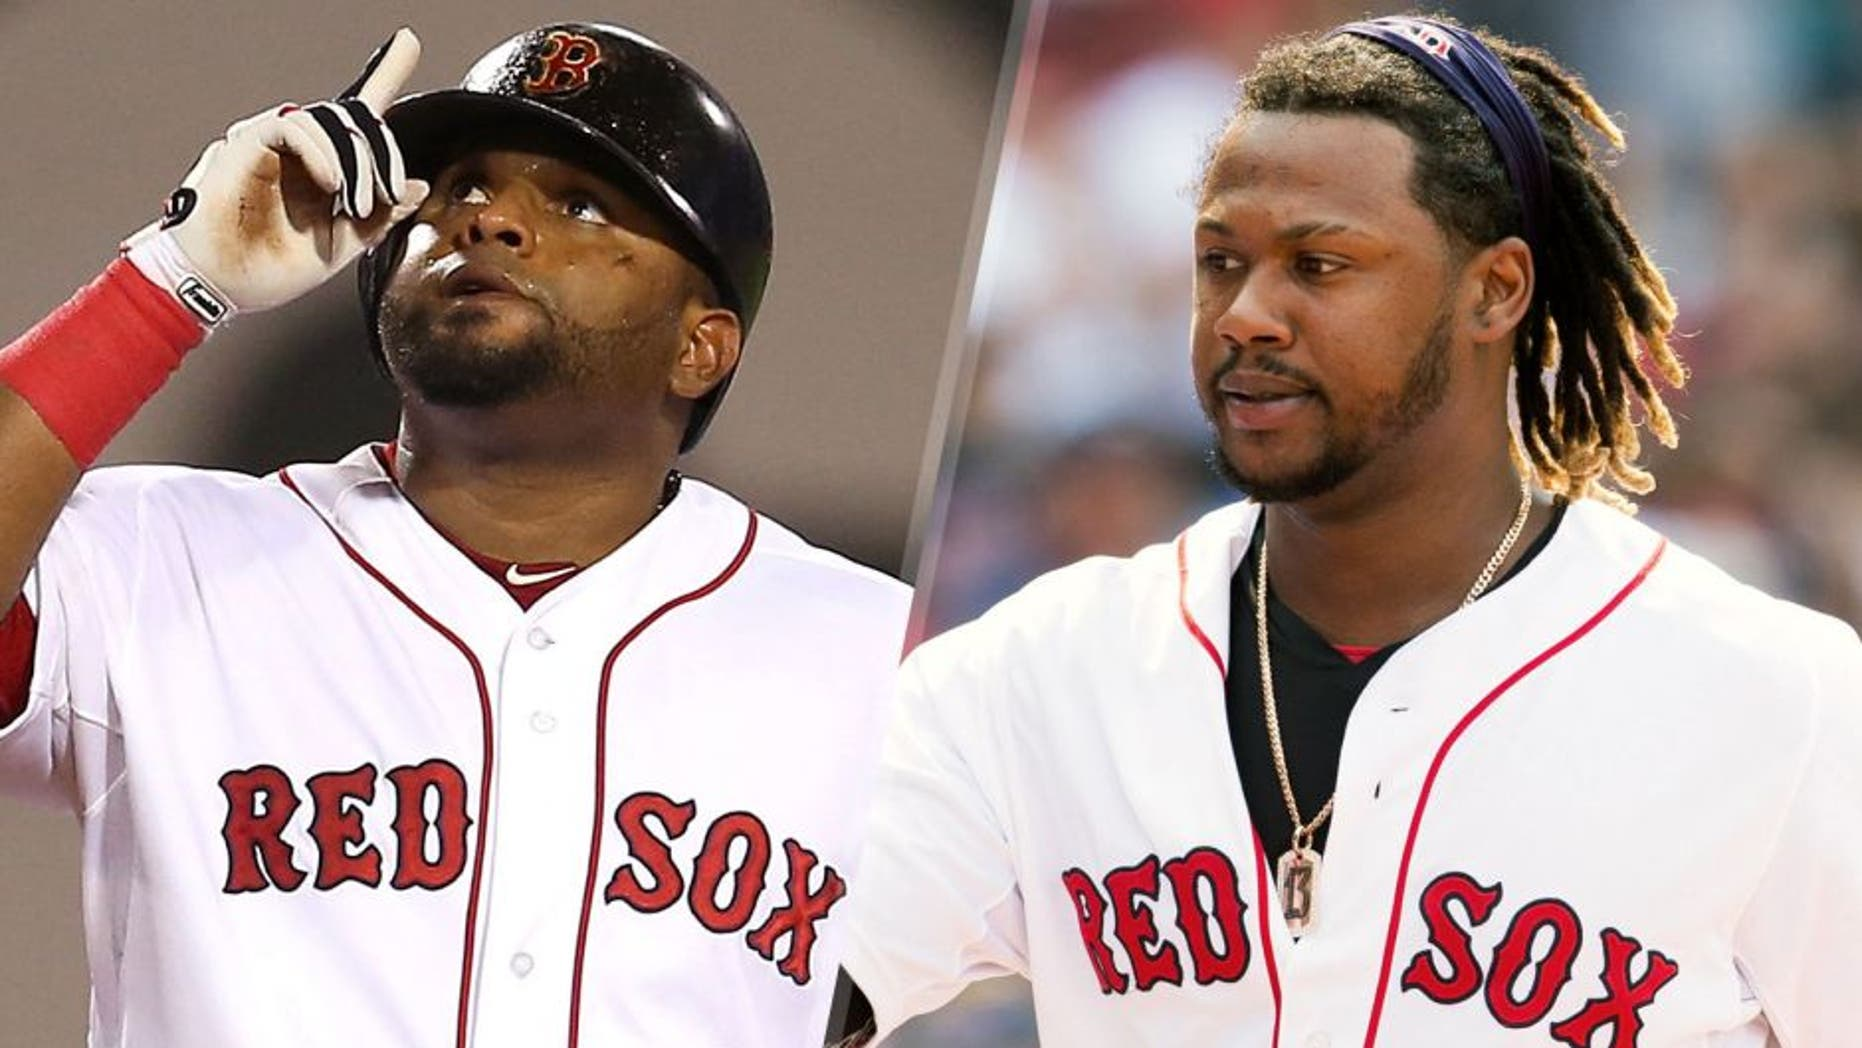 BOSTON, MA - JULY 27: Pablo Sandoval #48 of the Boston Red Sox reacts after a double against the Chicago White Sox in the fifth inning at Fenway Park on July 27, 2015 in Boston, Massachusetts. (Photo by Jim Rogash/Getty Images) BOSTON, MA - JULY 5: Hanley Ramirez #13 of the Boston Red Sox walks to the dug out after scoring after a Pablo Sandoval double during the sixth inning against the Houston Astros and is congratulated by a fan at Fenway Park on July 5, 2015 in Boston, Massachusetts. (Photo by Rich Gagnon/Getty Images)